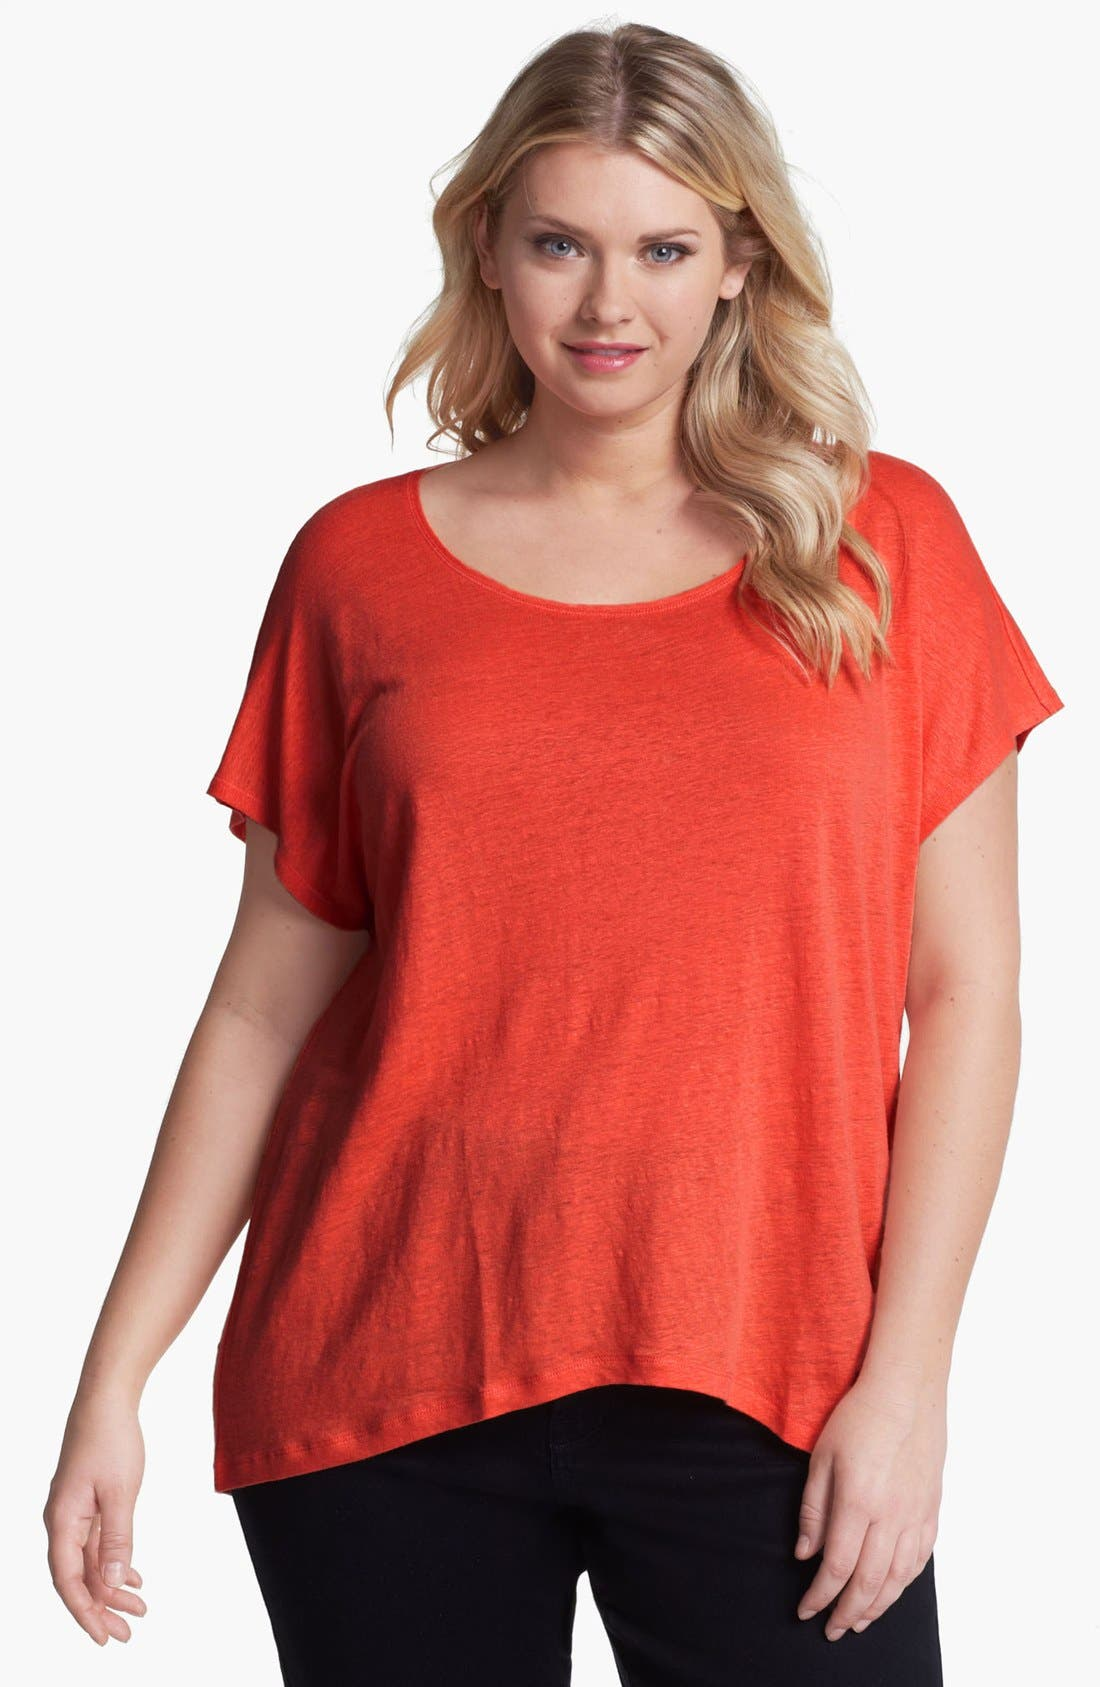 Alternate Image 1 Selected - Eileen Fisher Scoop Neck Tee (Plus Size)